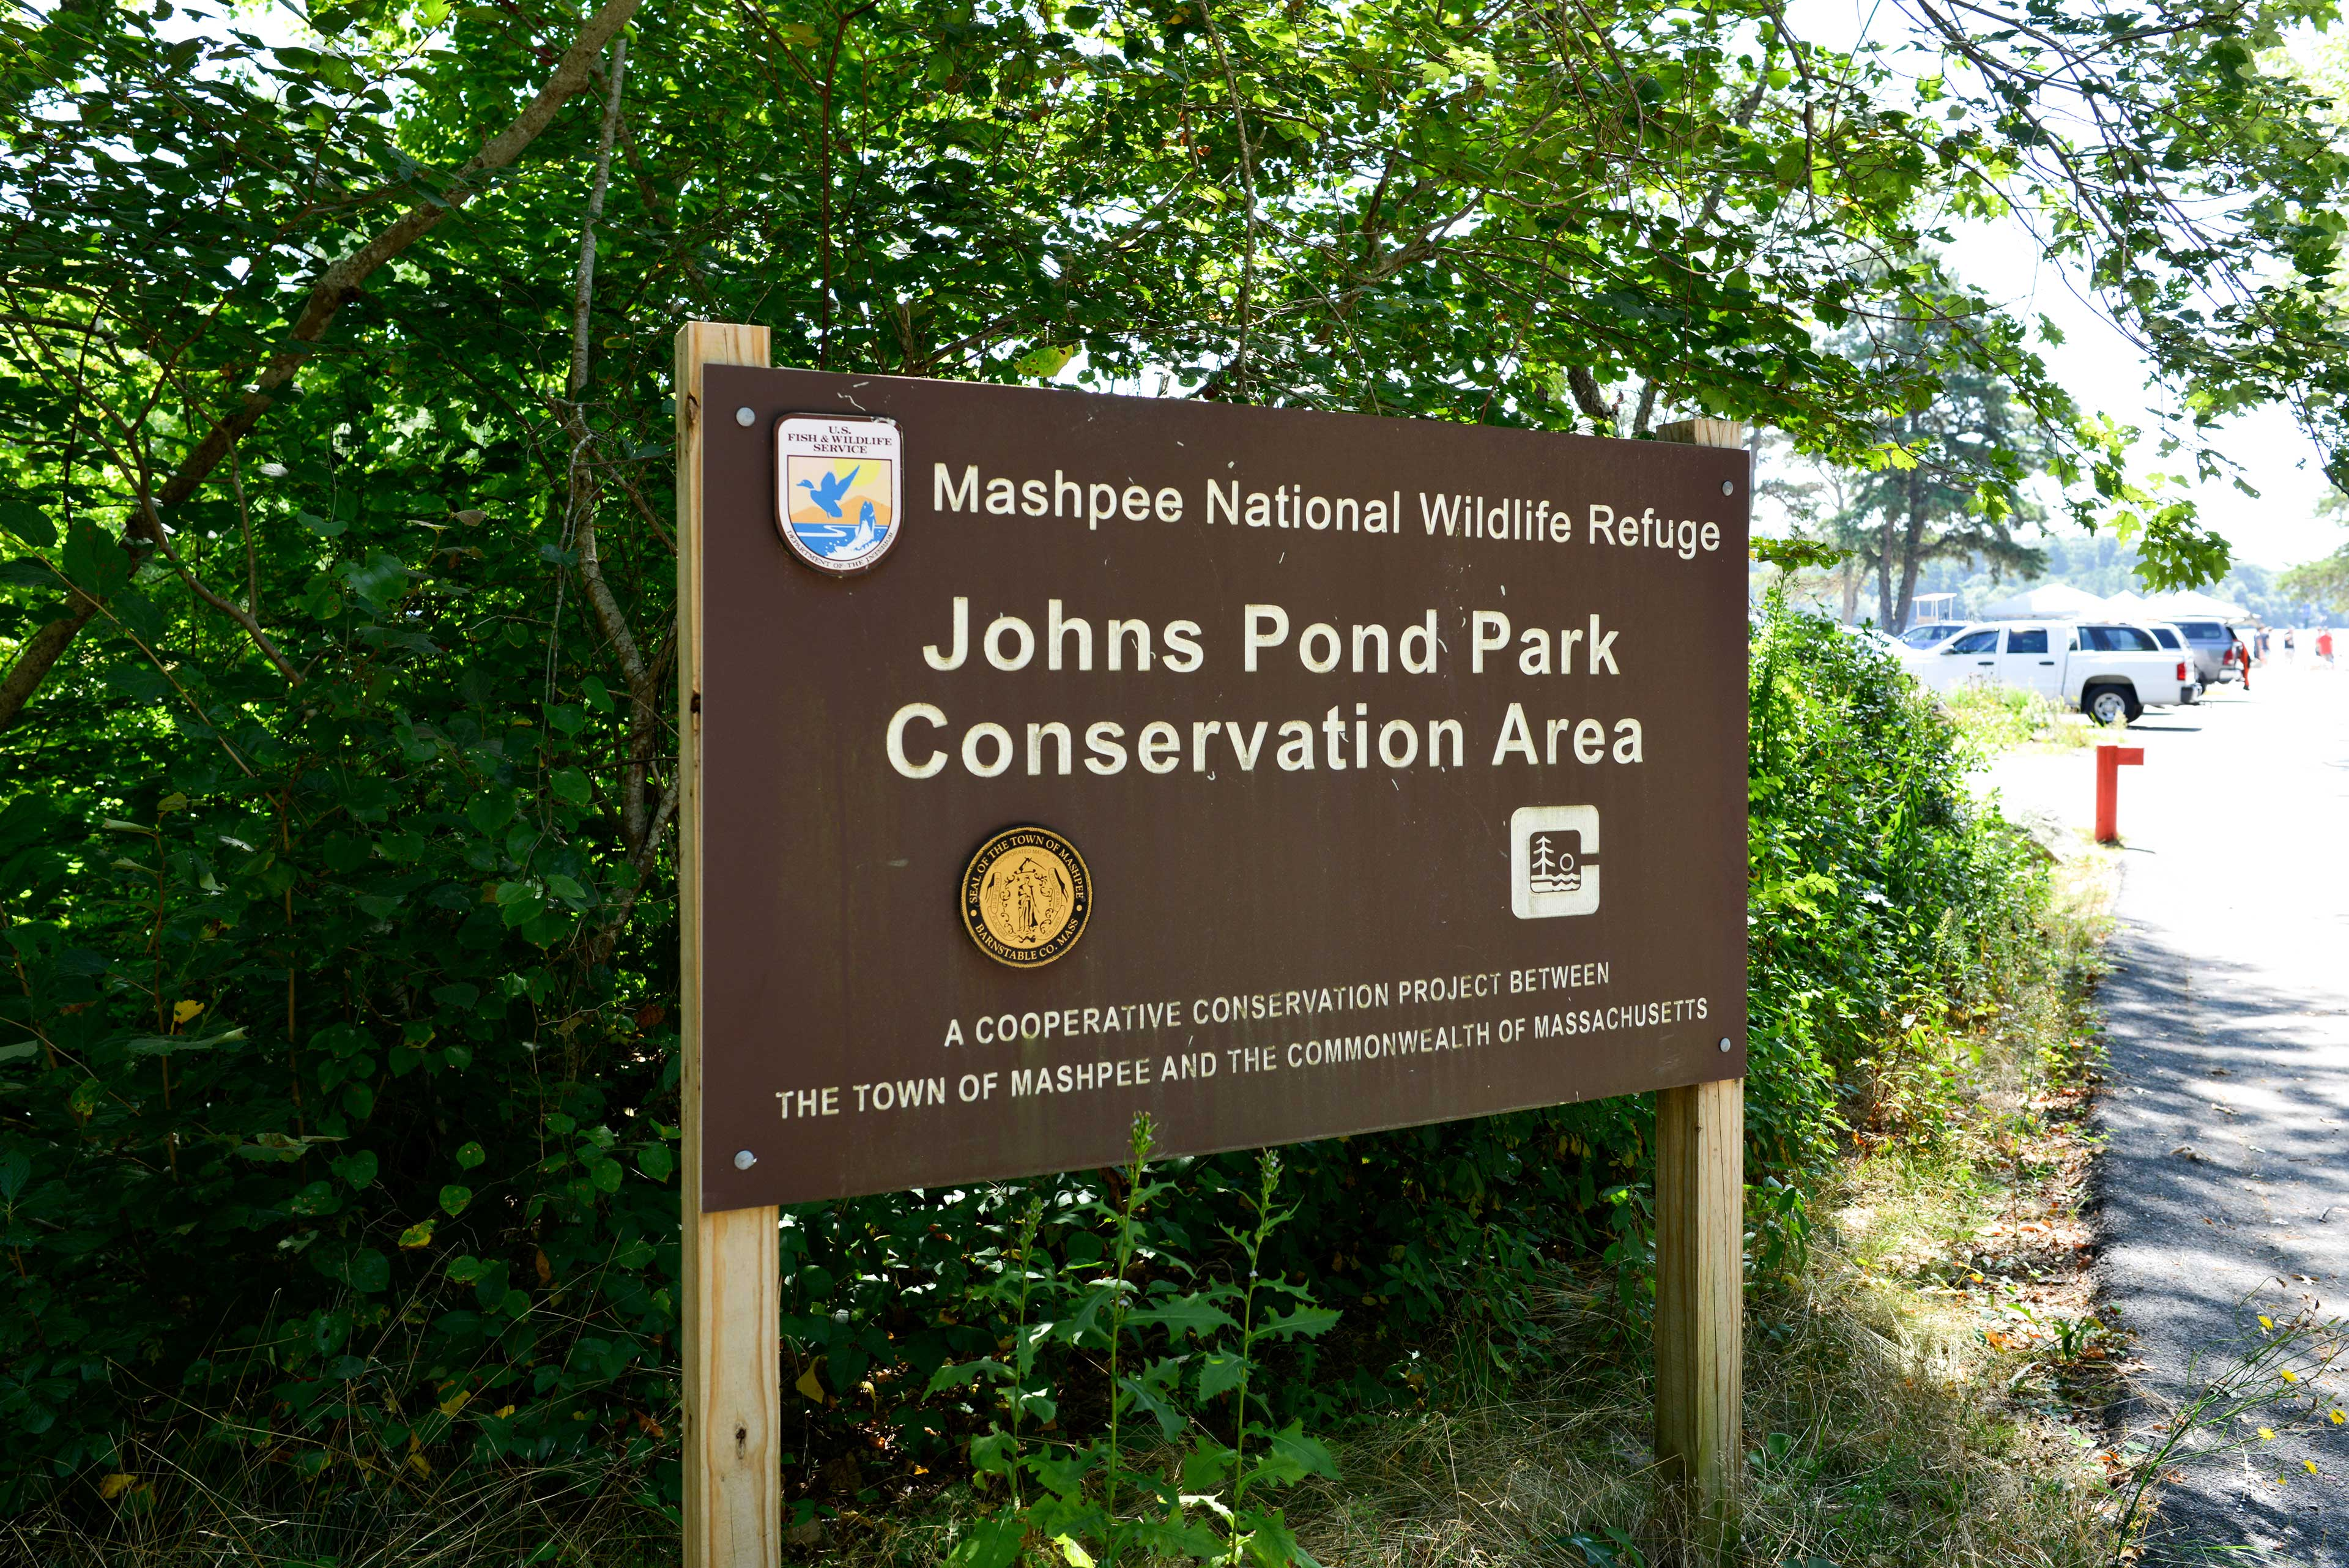 The home is just minutes from Johns Pond Park.